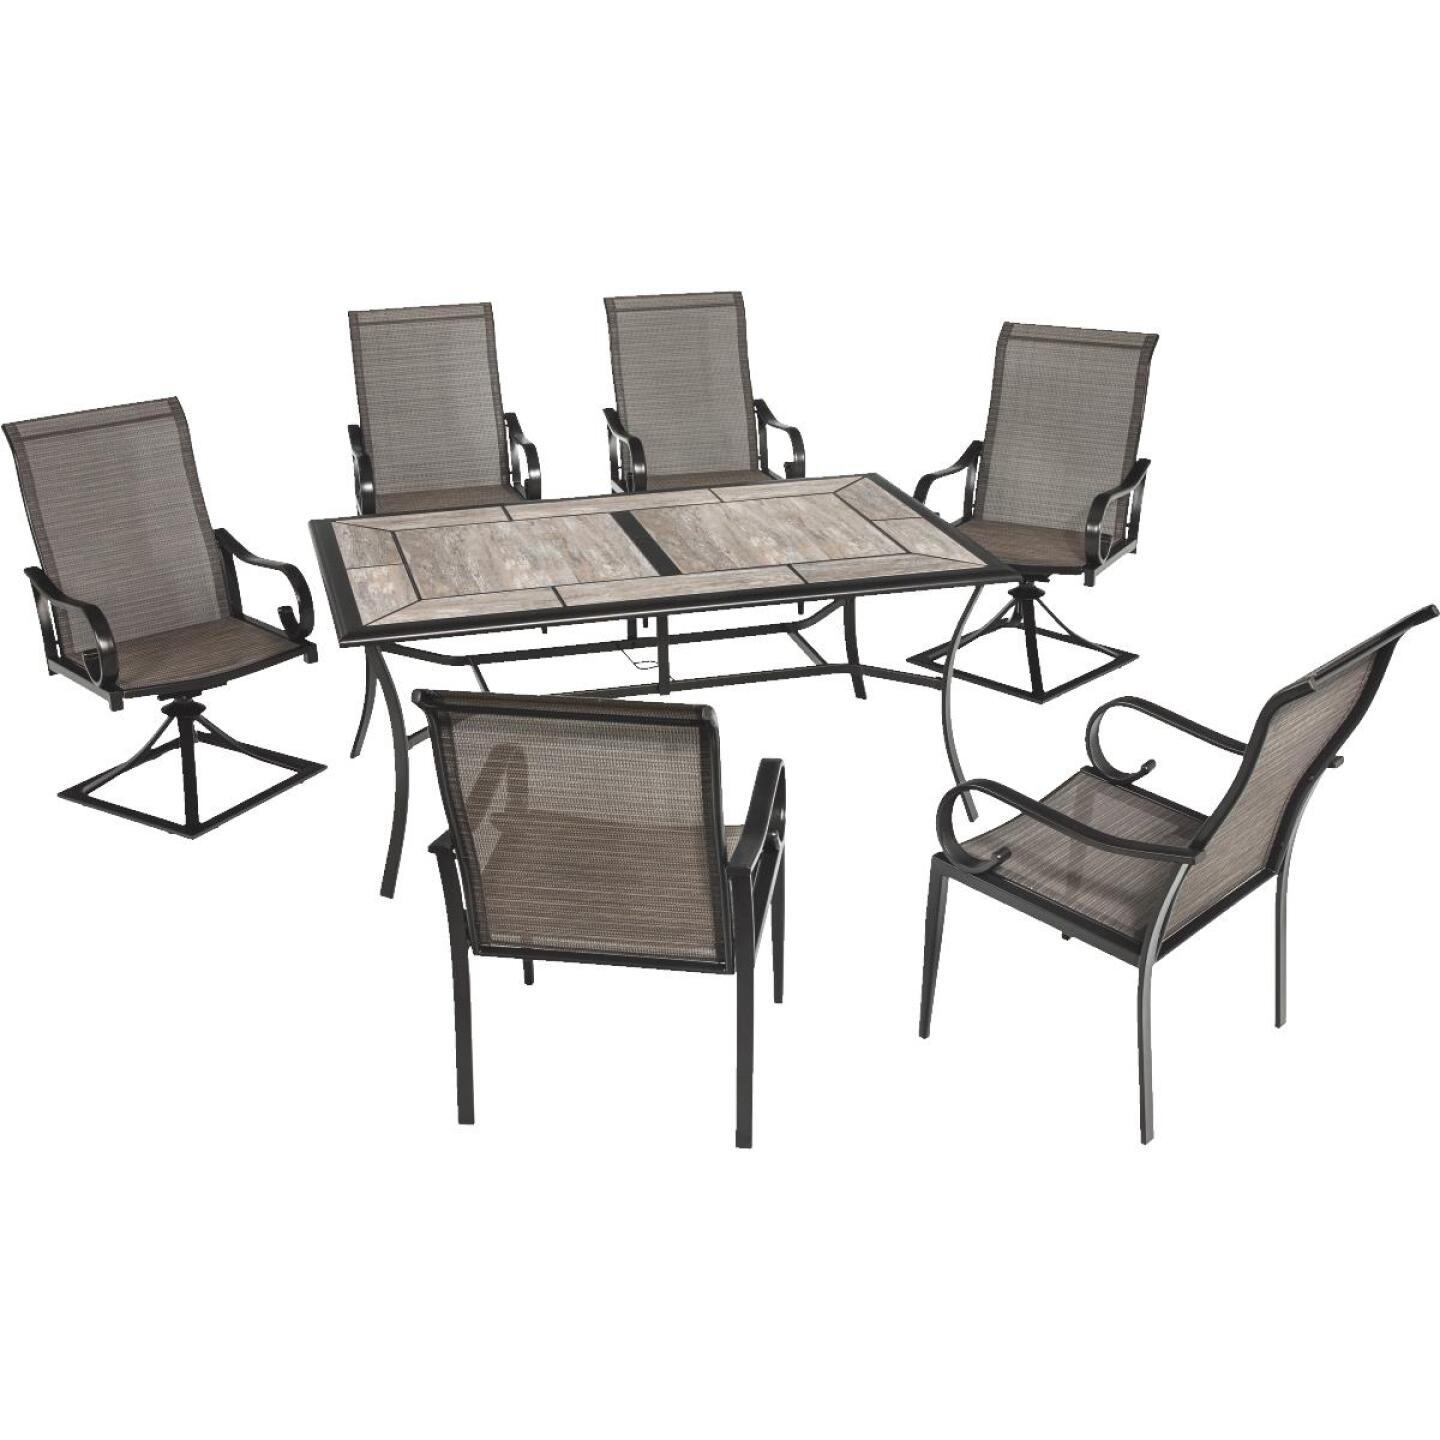 Outdoor Expressions Berkshire 7-Piece Dining Set Image 182